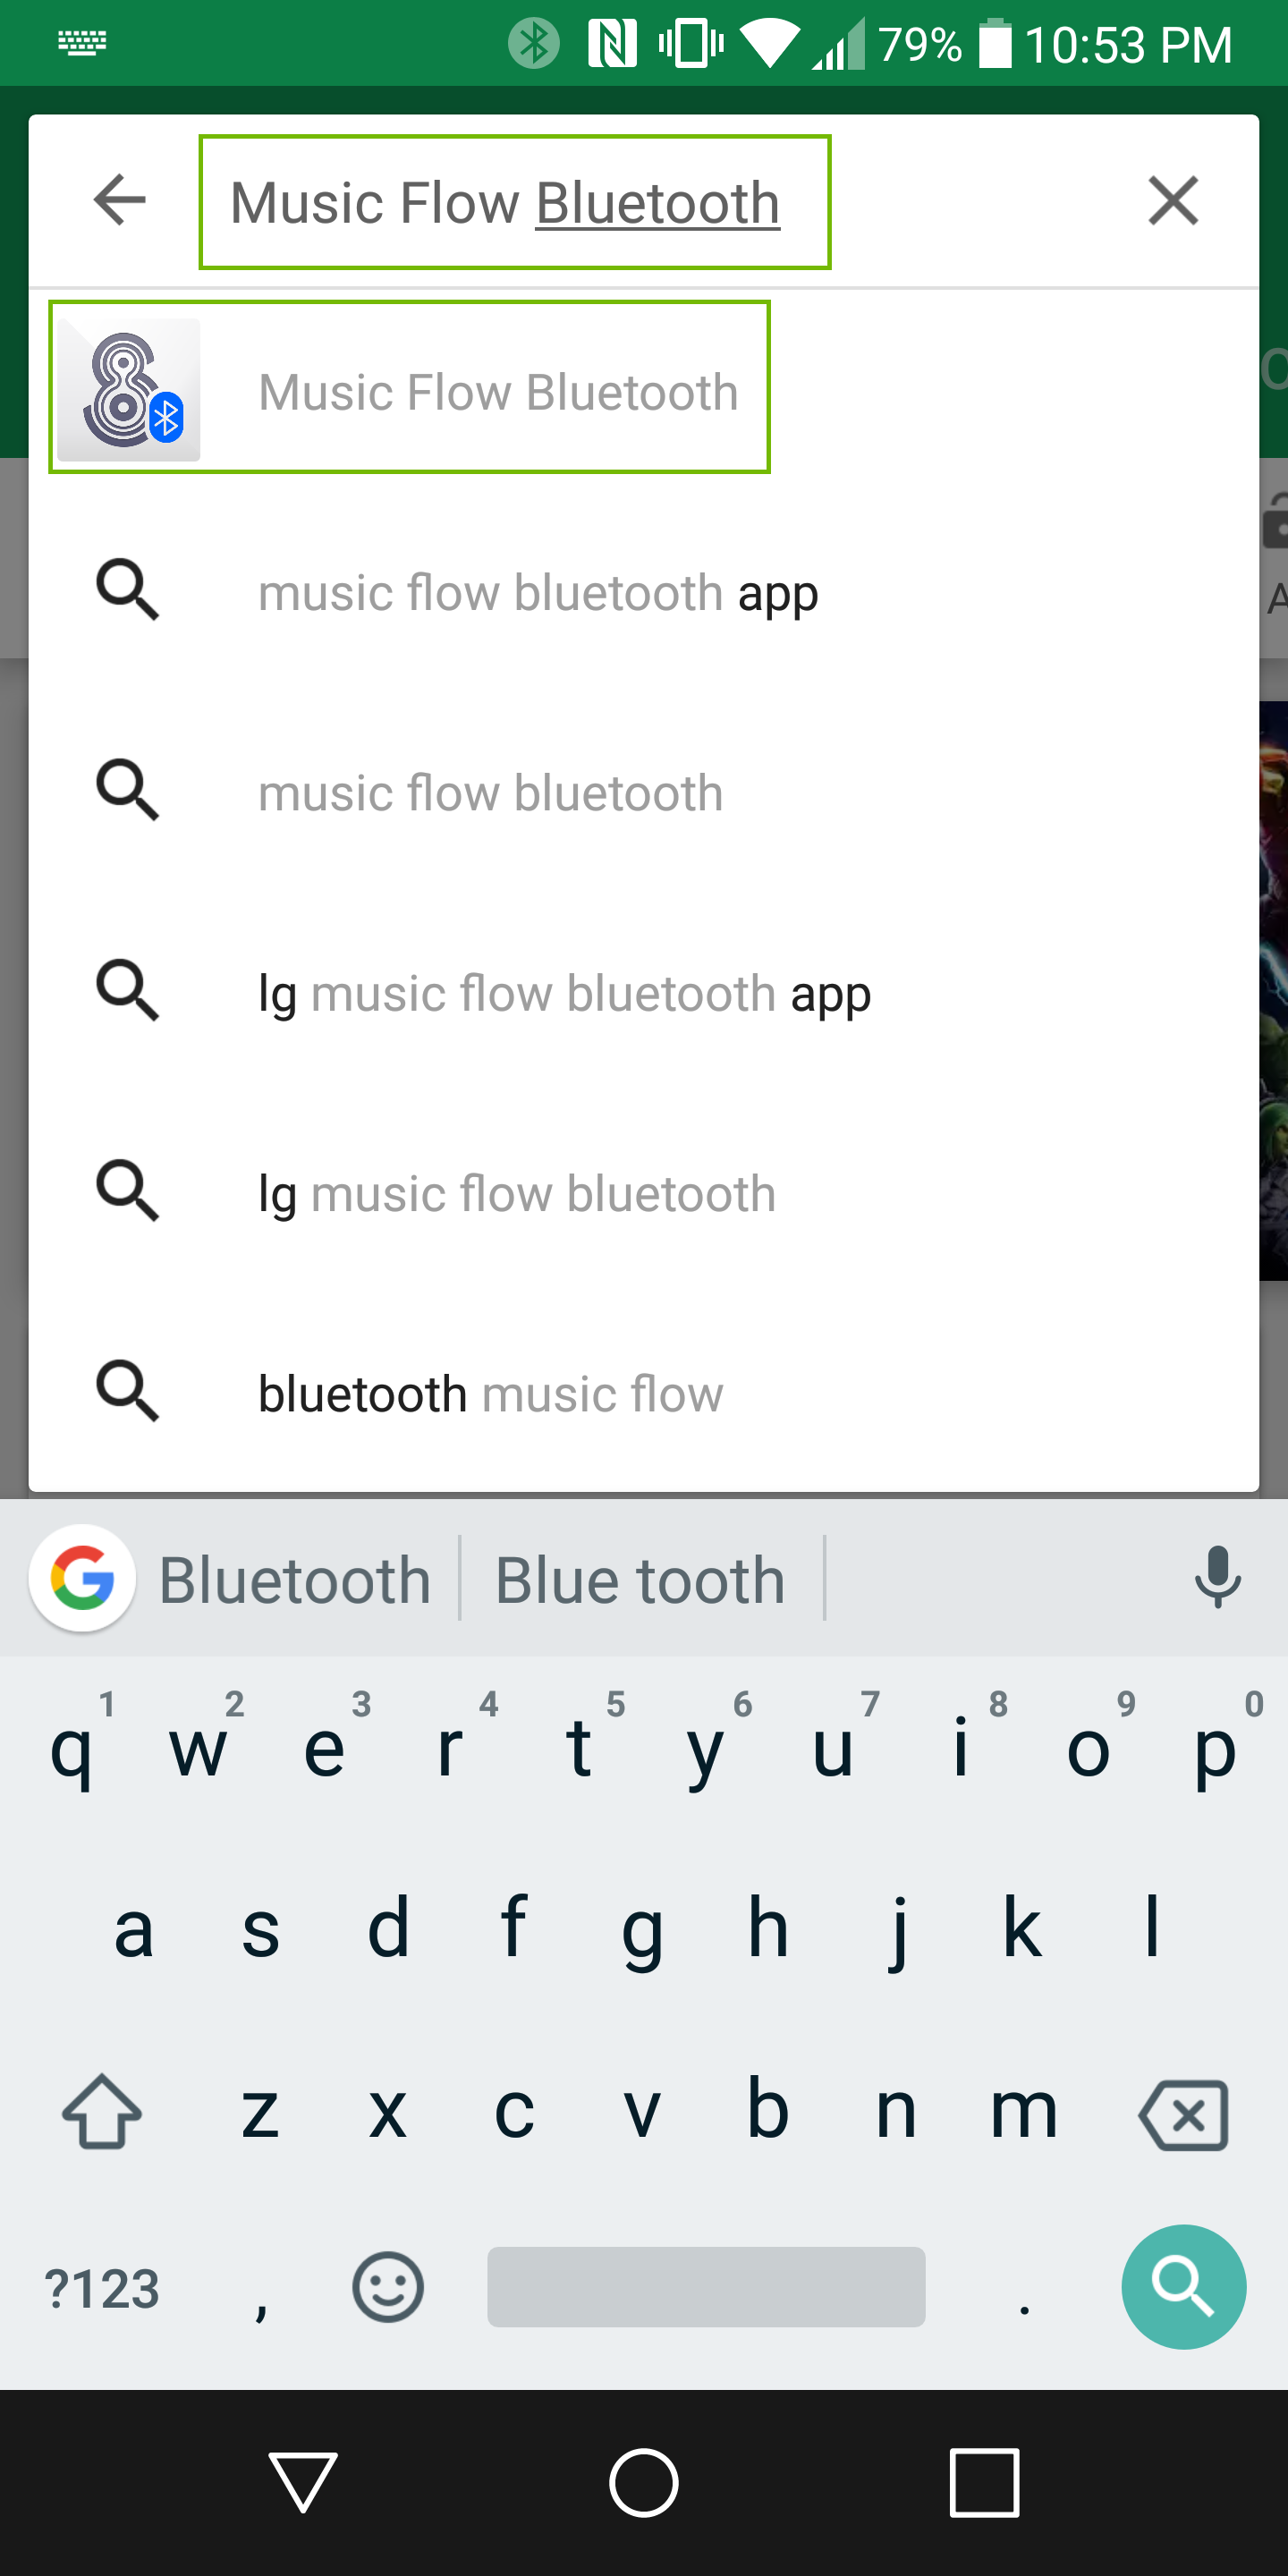 Screenshot of searching for music flow bluetooth with the search bar and app from quick search list highlighted